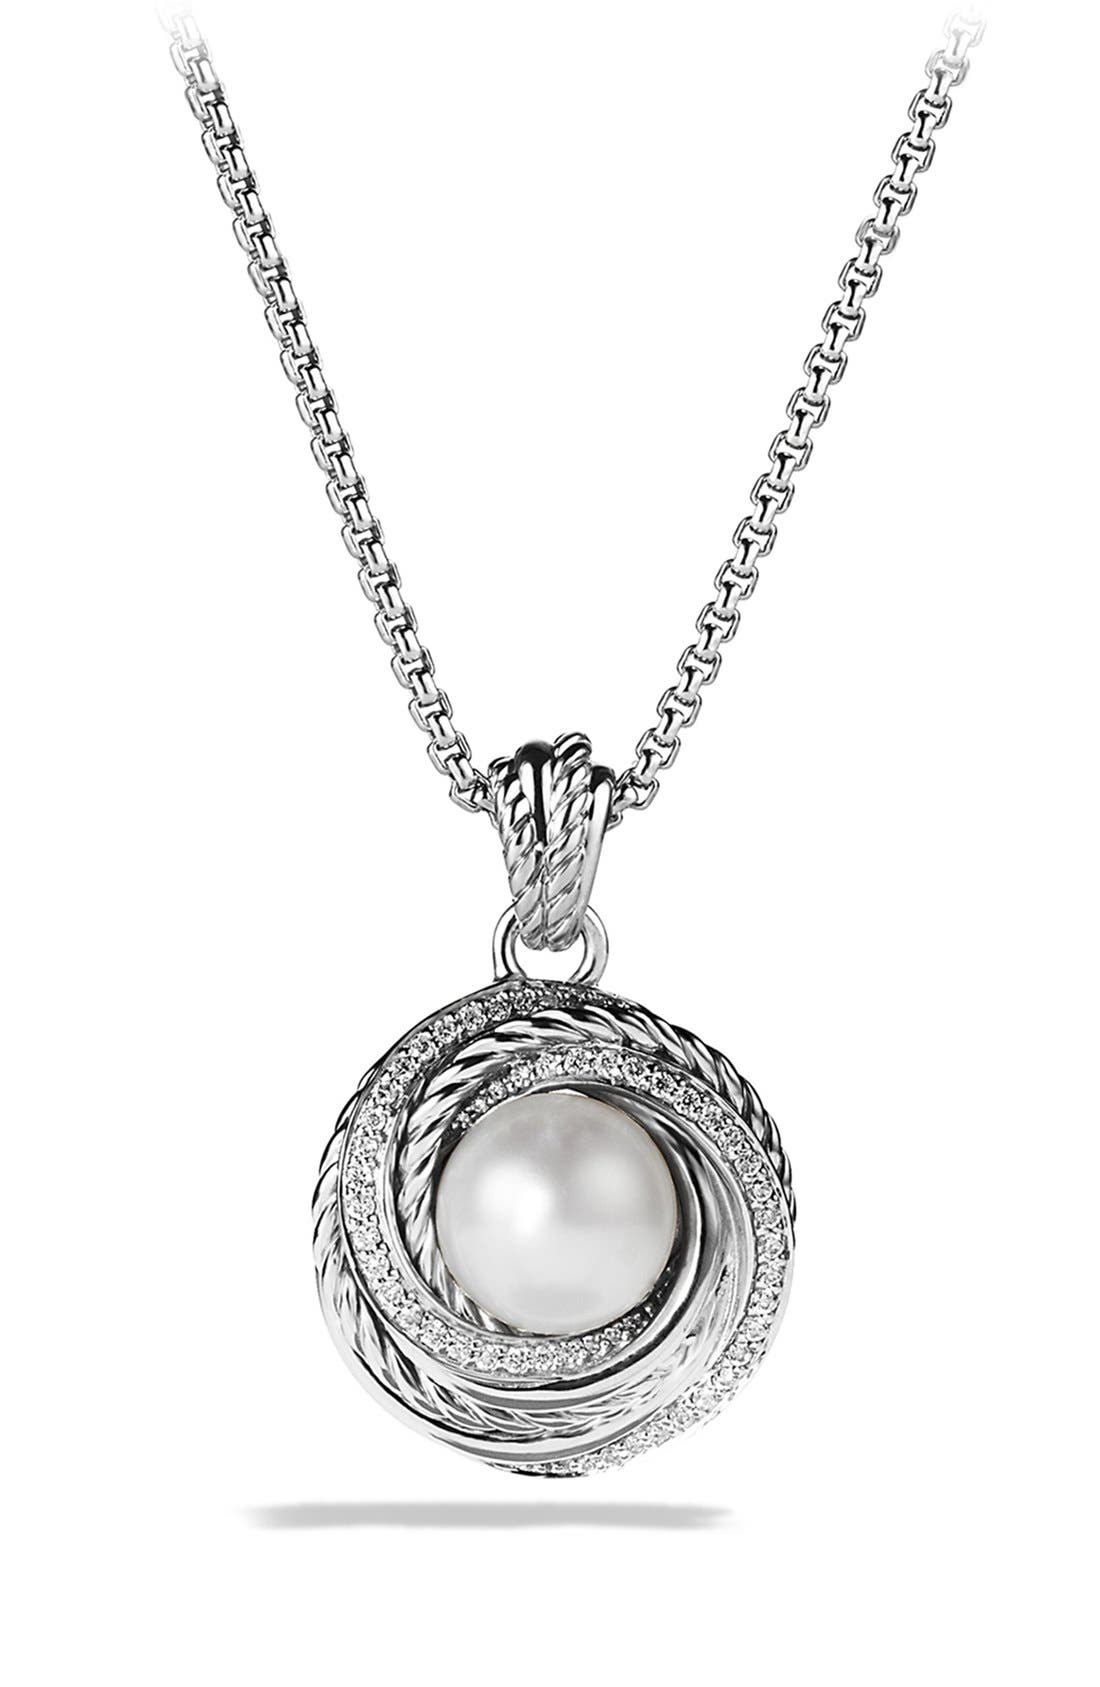 Main Image - David Yurman 'Pearl Crossover' Pendant with Diamonds on Chain